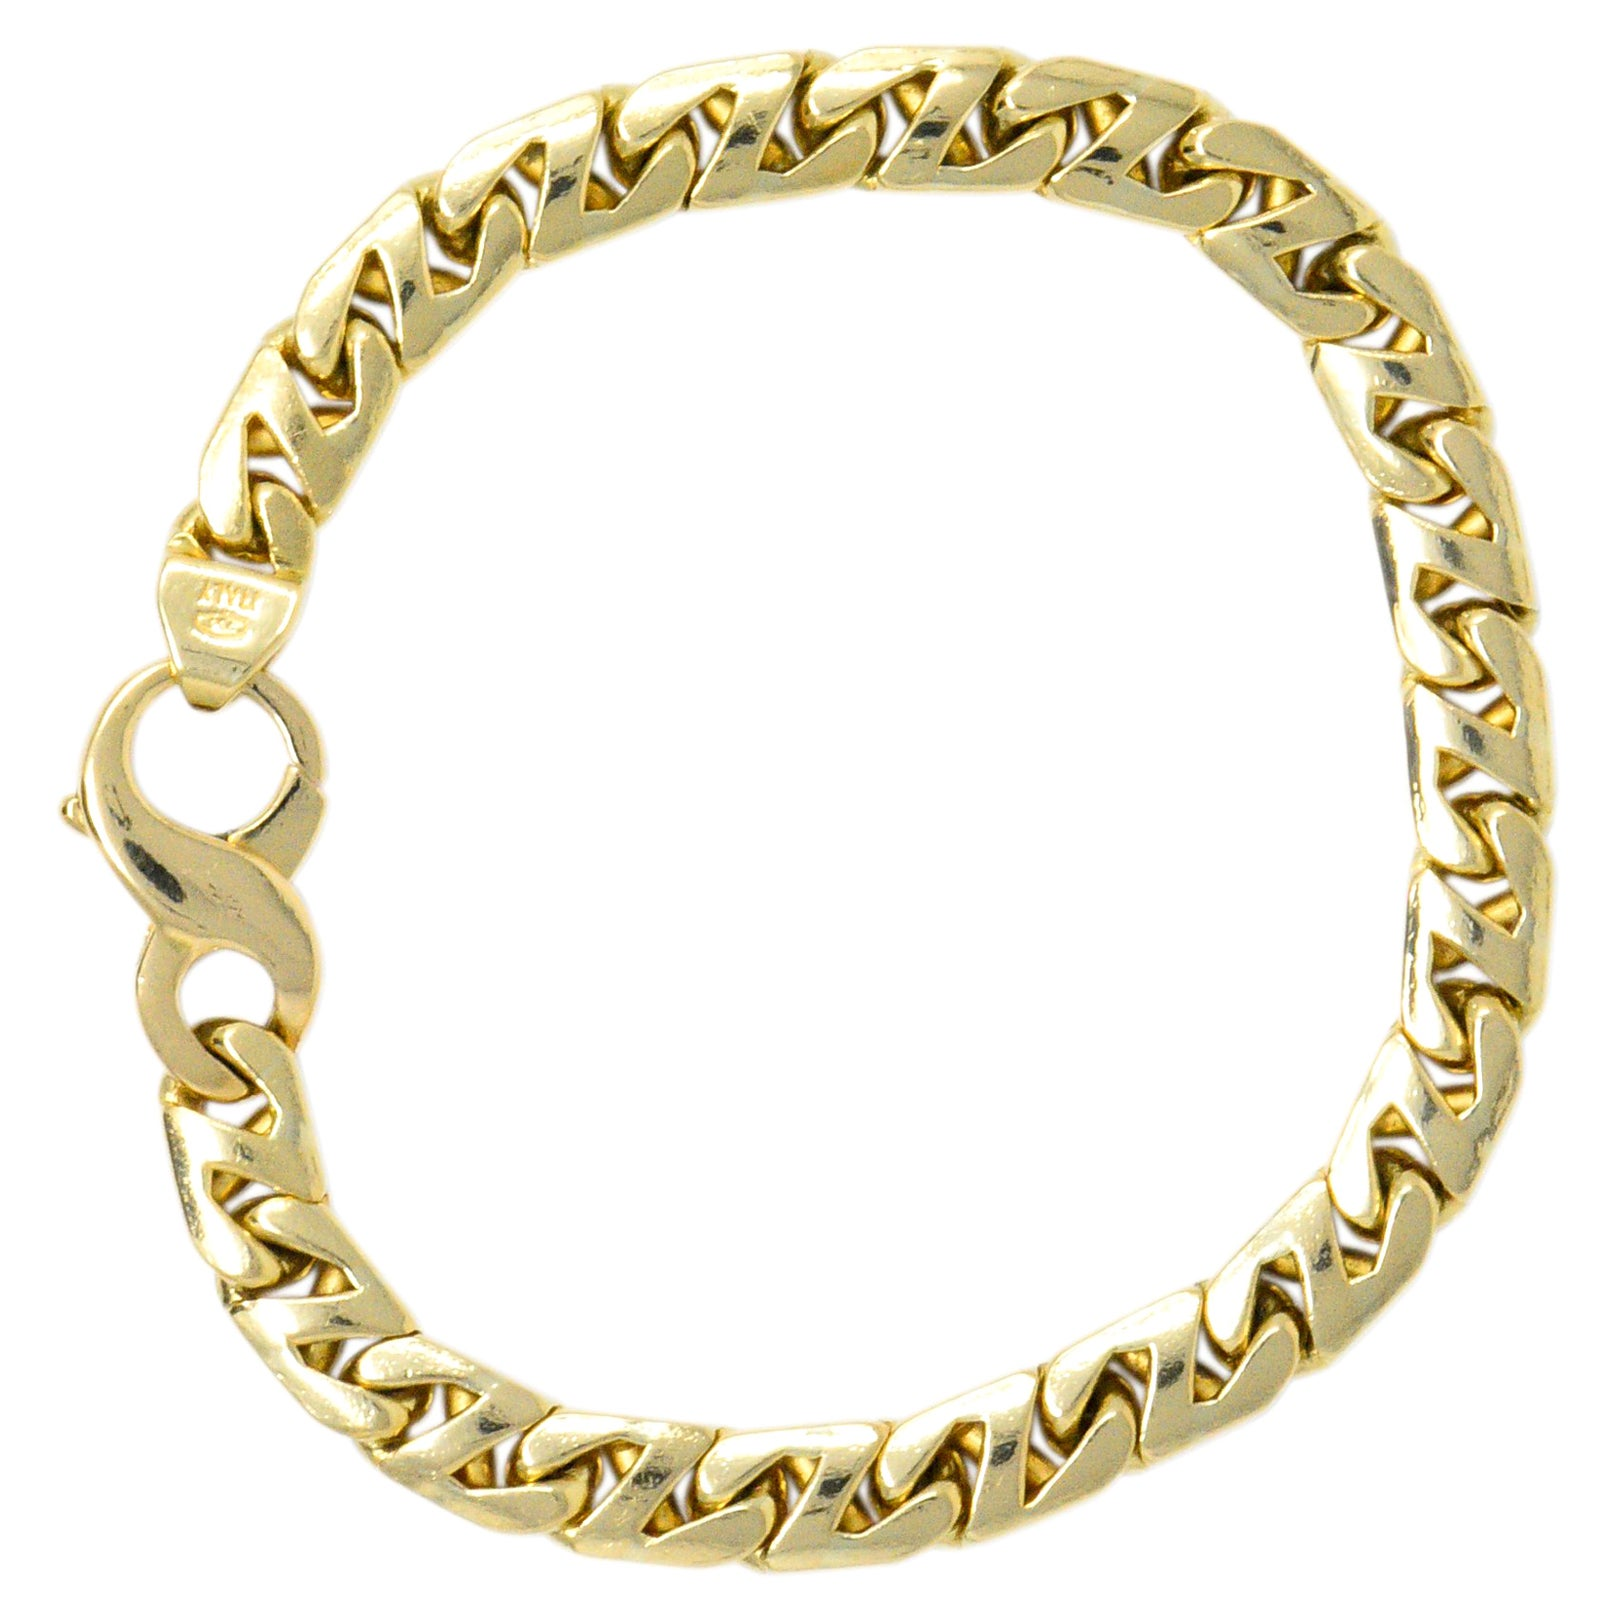 Tiffany & Co. Vintage 18 Karat Gold Cuban Chain Unisex Bracelet